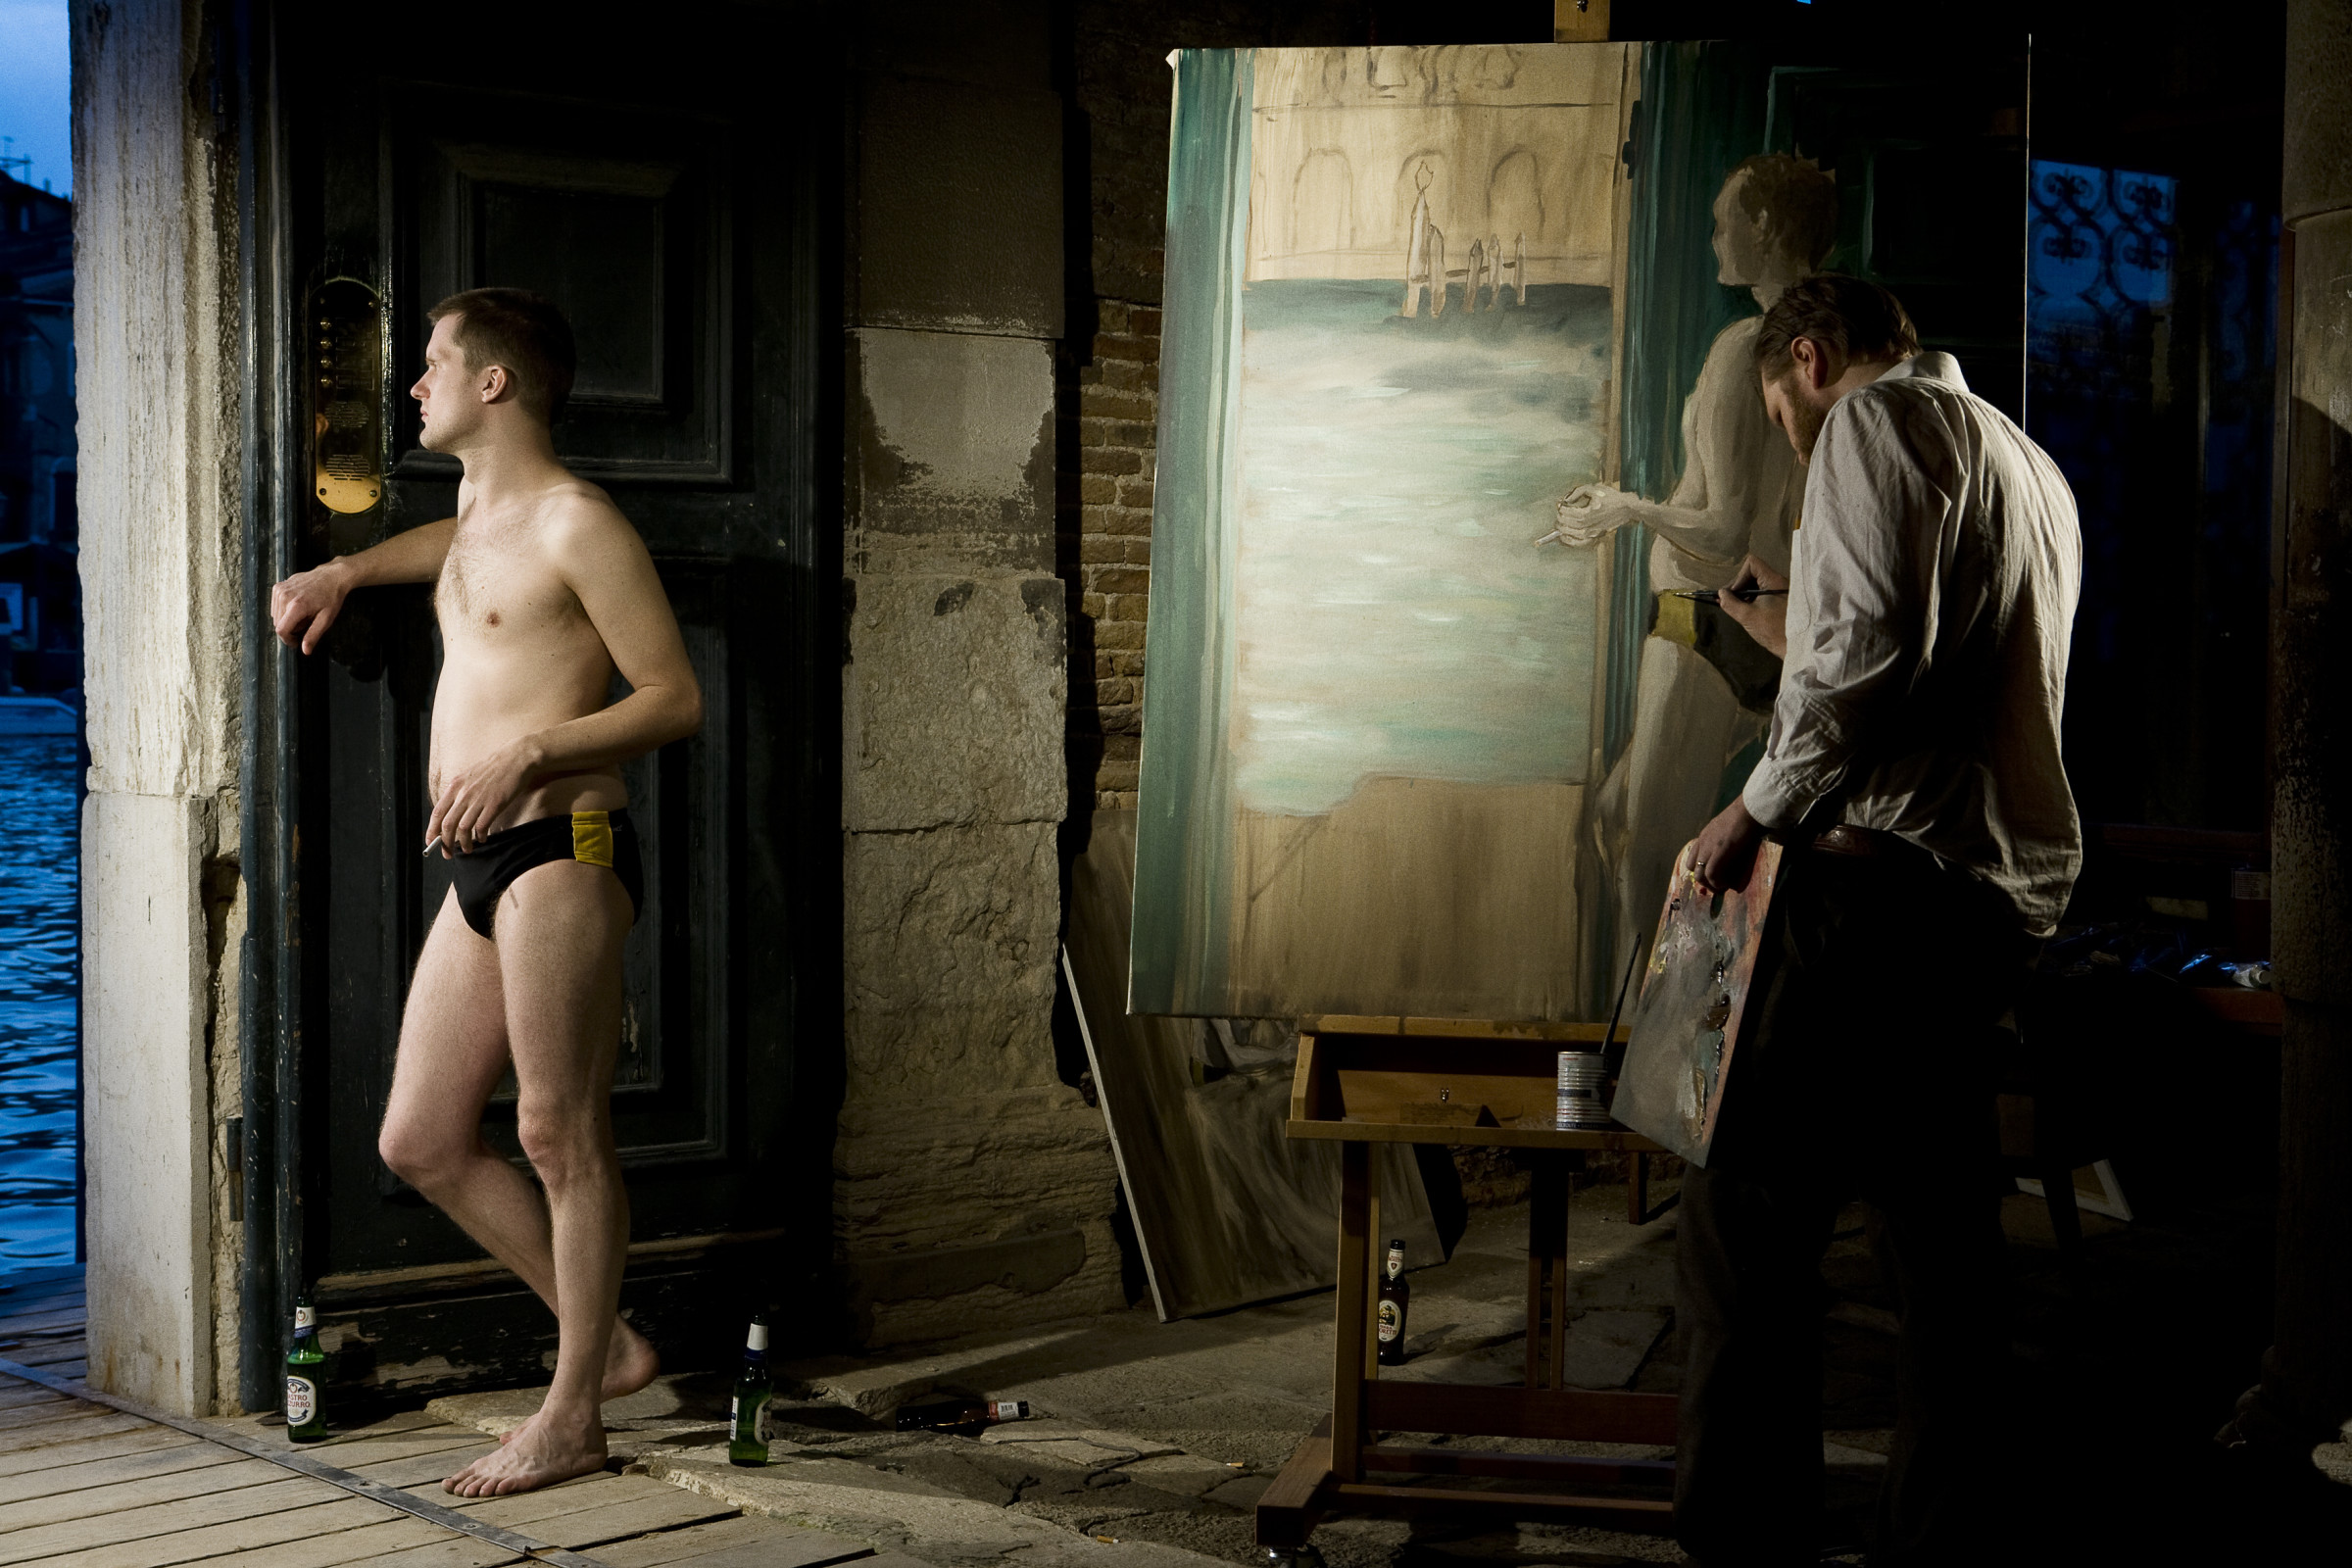 "<span class=""link fancybox-details-link""><a href=""/artists/35-ragnar-kjartansson/works/16052/"">View Detail Page</a></span><div class=""artist""><strong>RAGNAR KJARTANSSON</strong></div> <div class=""title""><em>The End – Venezia</em>, 2009</div> <div class=""medium"">performance</div> <div class=""dimensions"">Six-month performance during which 144 paintings were made. The Iceland Pavilion, Palazzo Michiel dal Brusà, 53rd Venice Biennale, 2009.<br /> 14 June to 22 November, daily for six hours</div><div class=""copyright_line"">Copyright The Artist</div>"